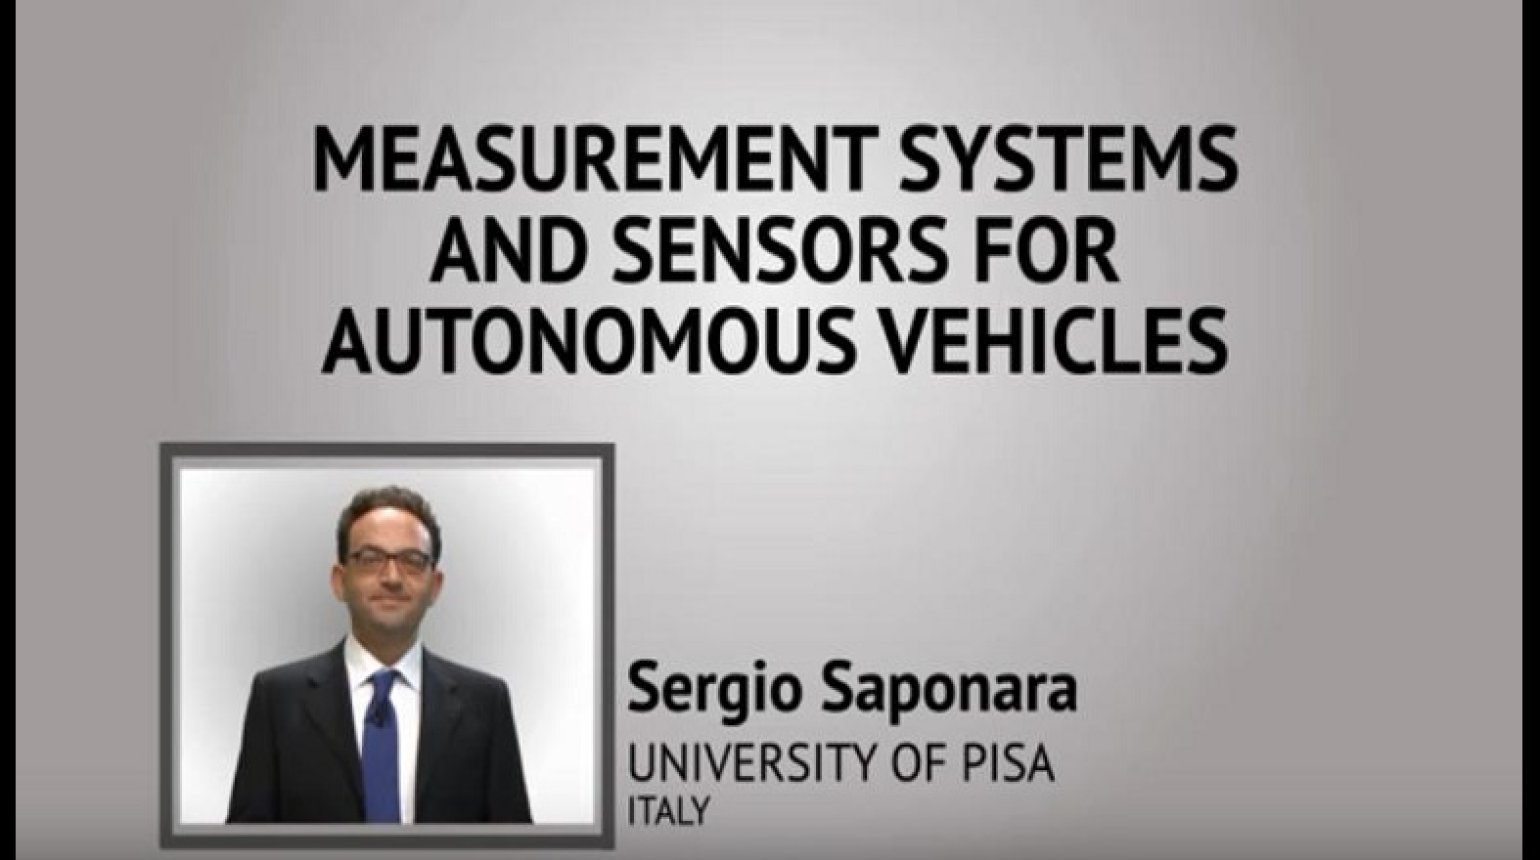 Measurement Systems and Sensors for Autonomous Vehicles